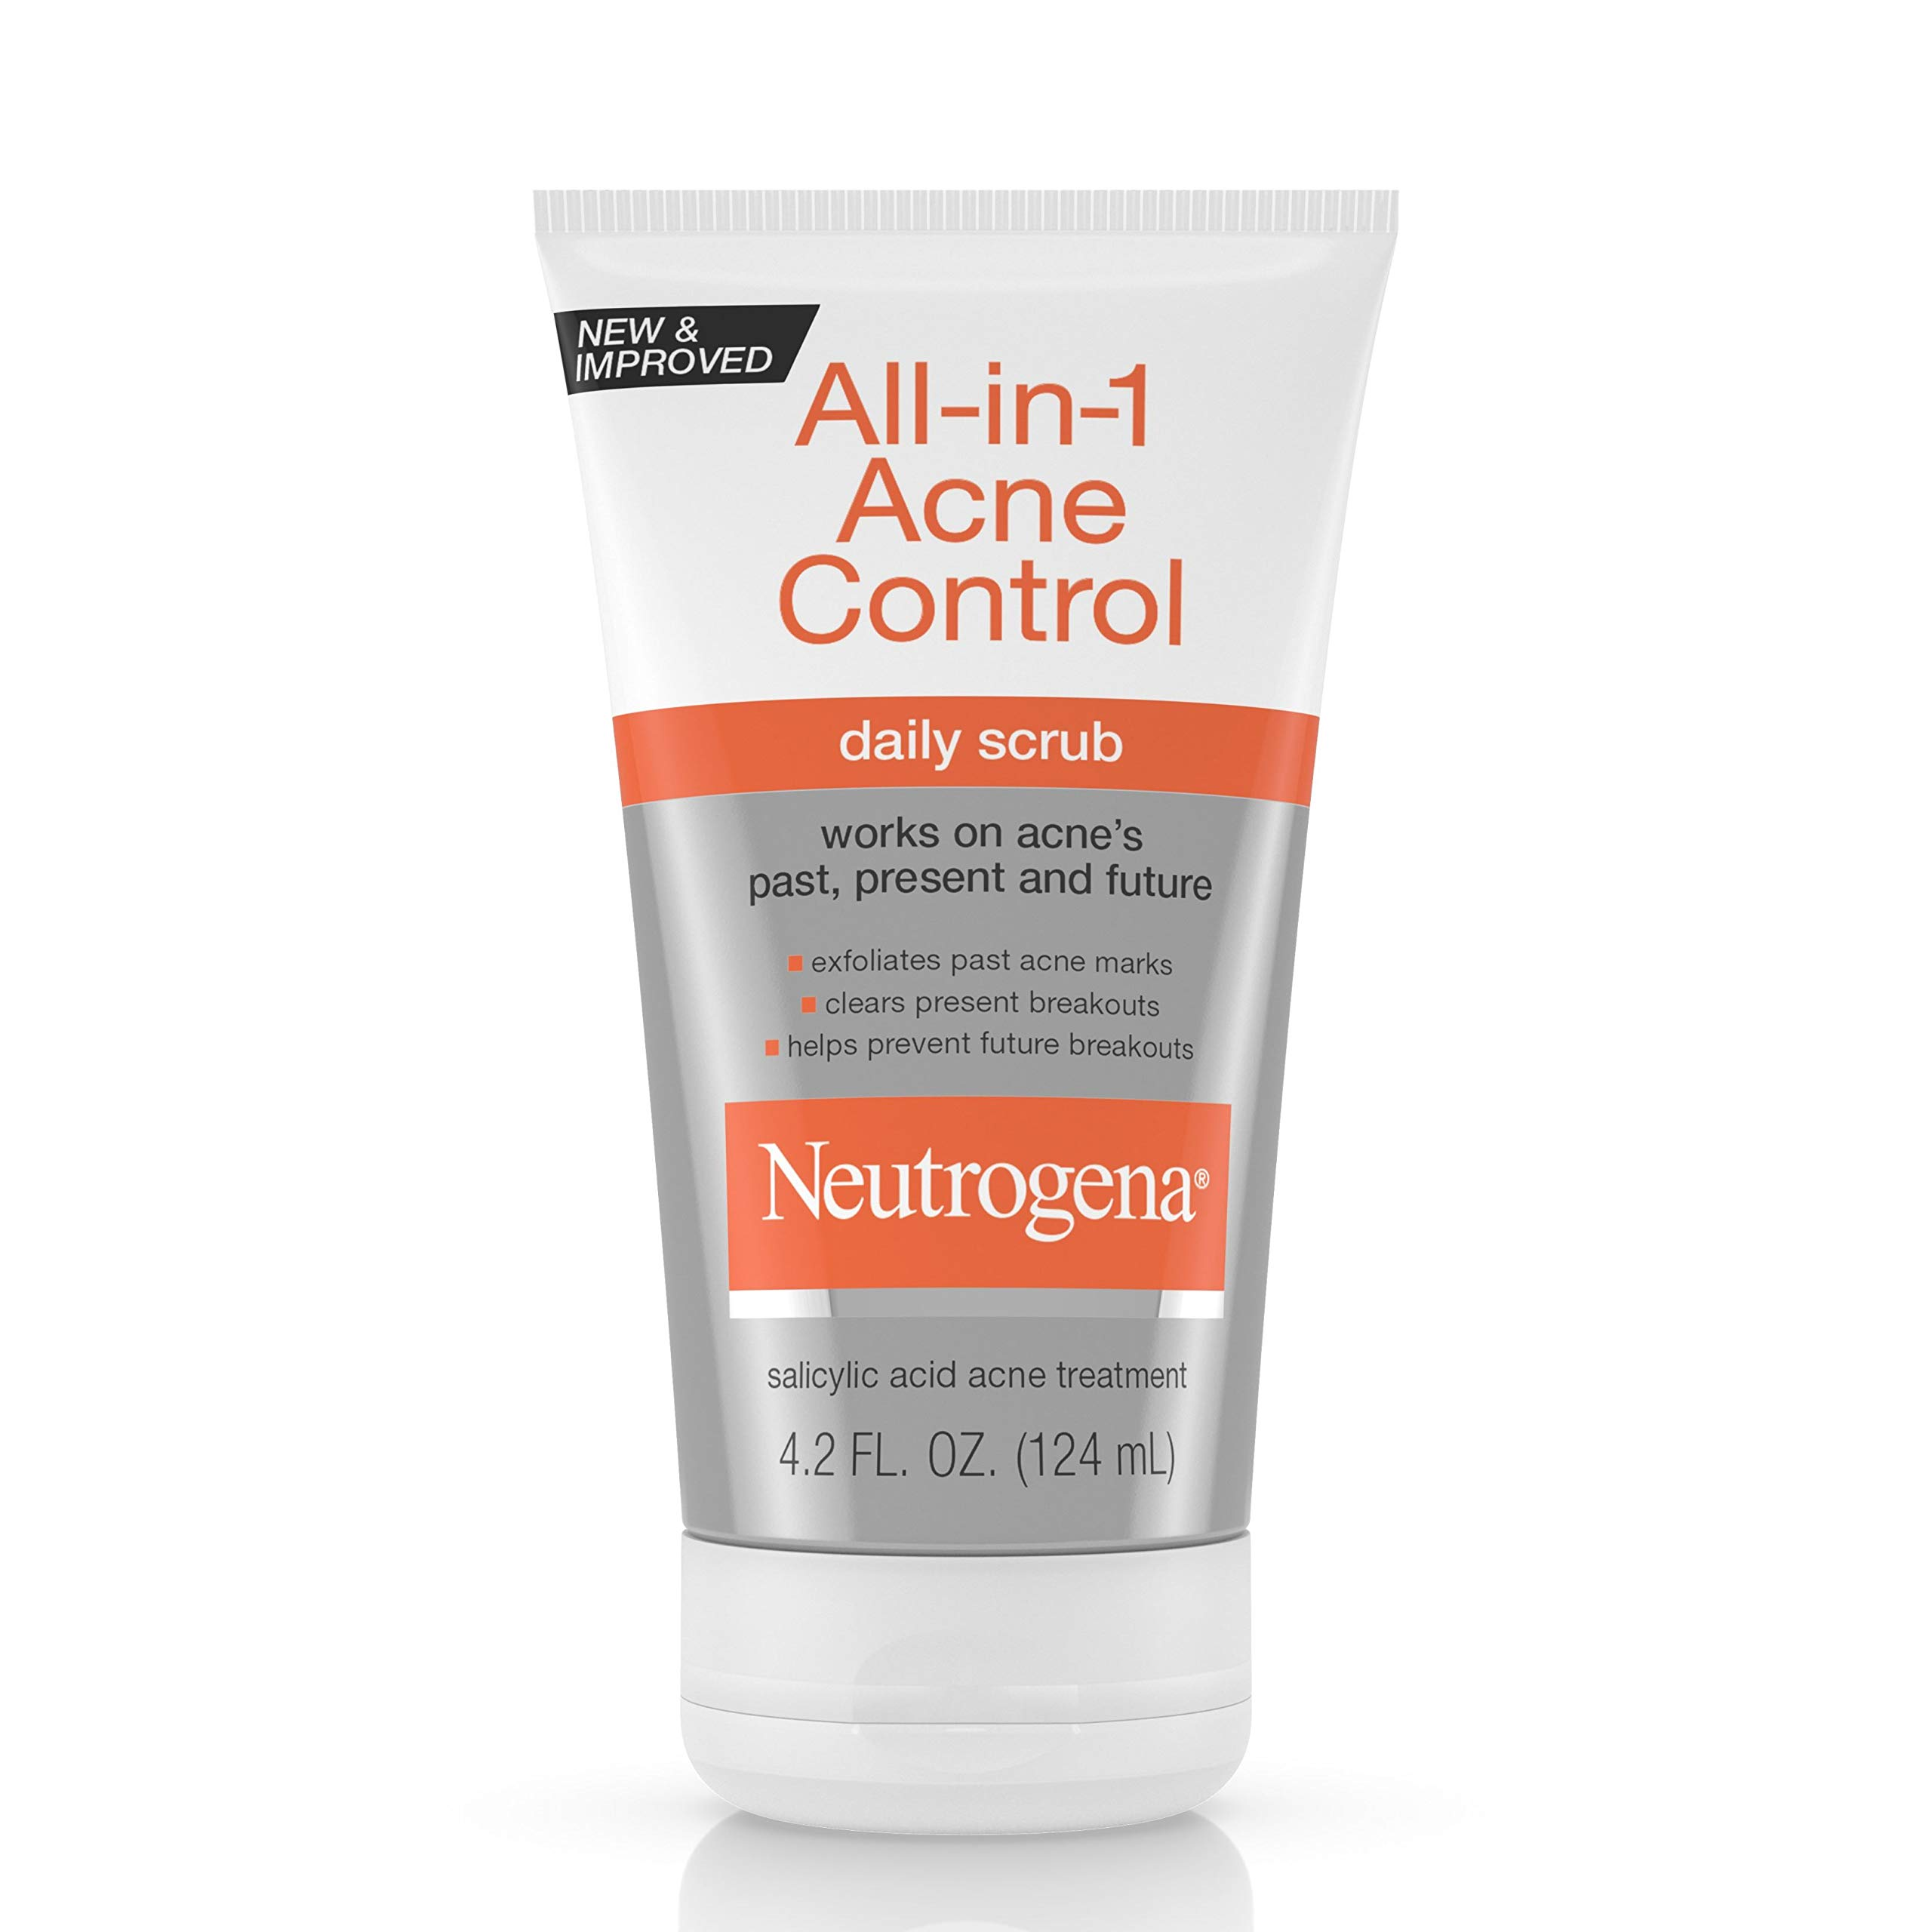 Neutrogena All-In-1 Acne Control Daily Face Scrub to Exfoliate and Treat Acne, Salicylic Acid Acne Treatment, 4.2 fl. Oz (Pack of 3) by Neutrogena